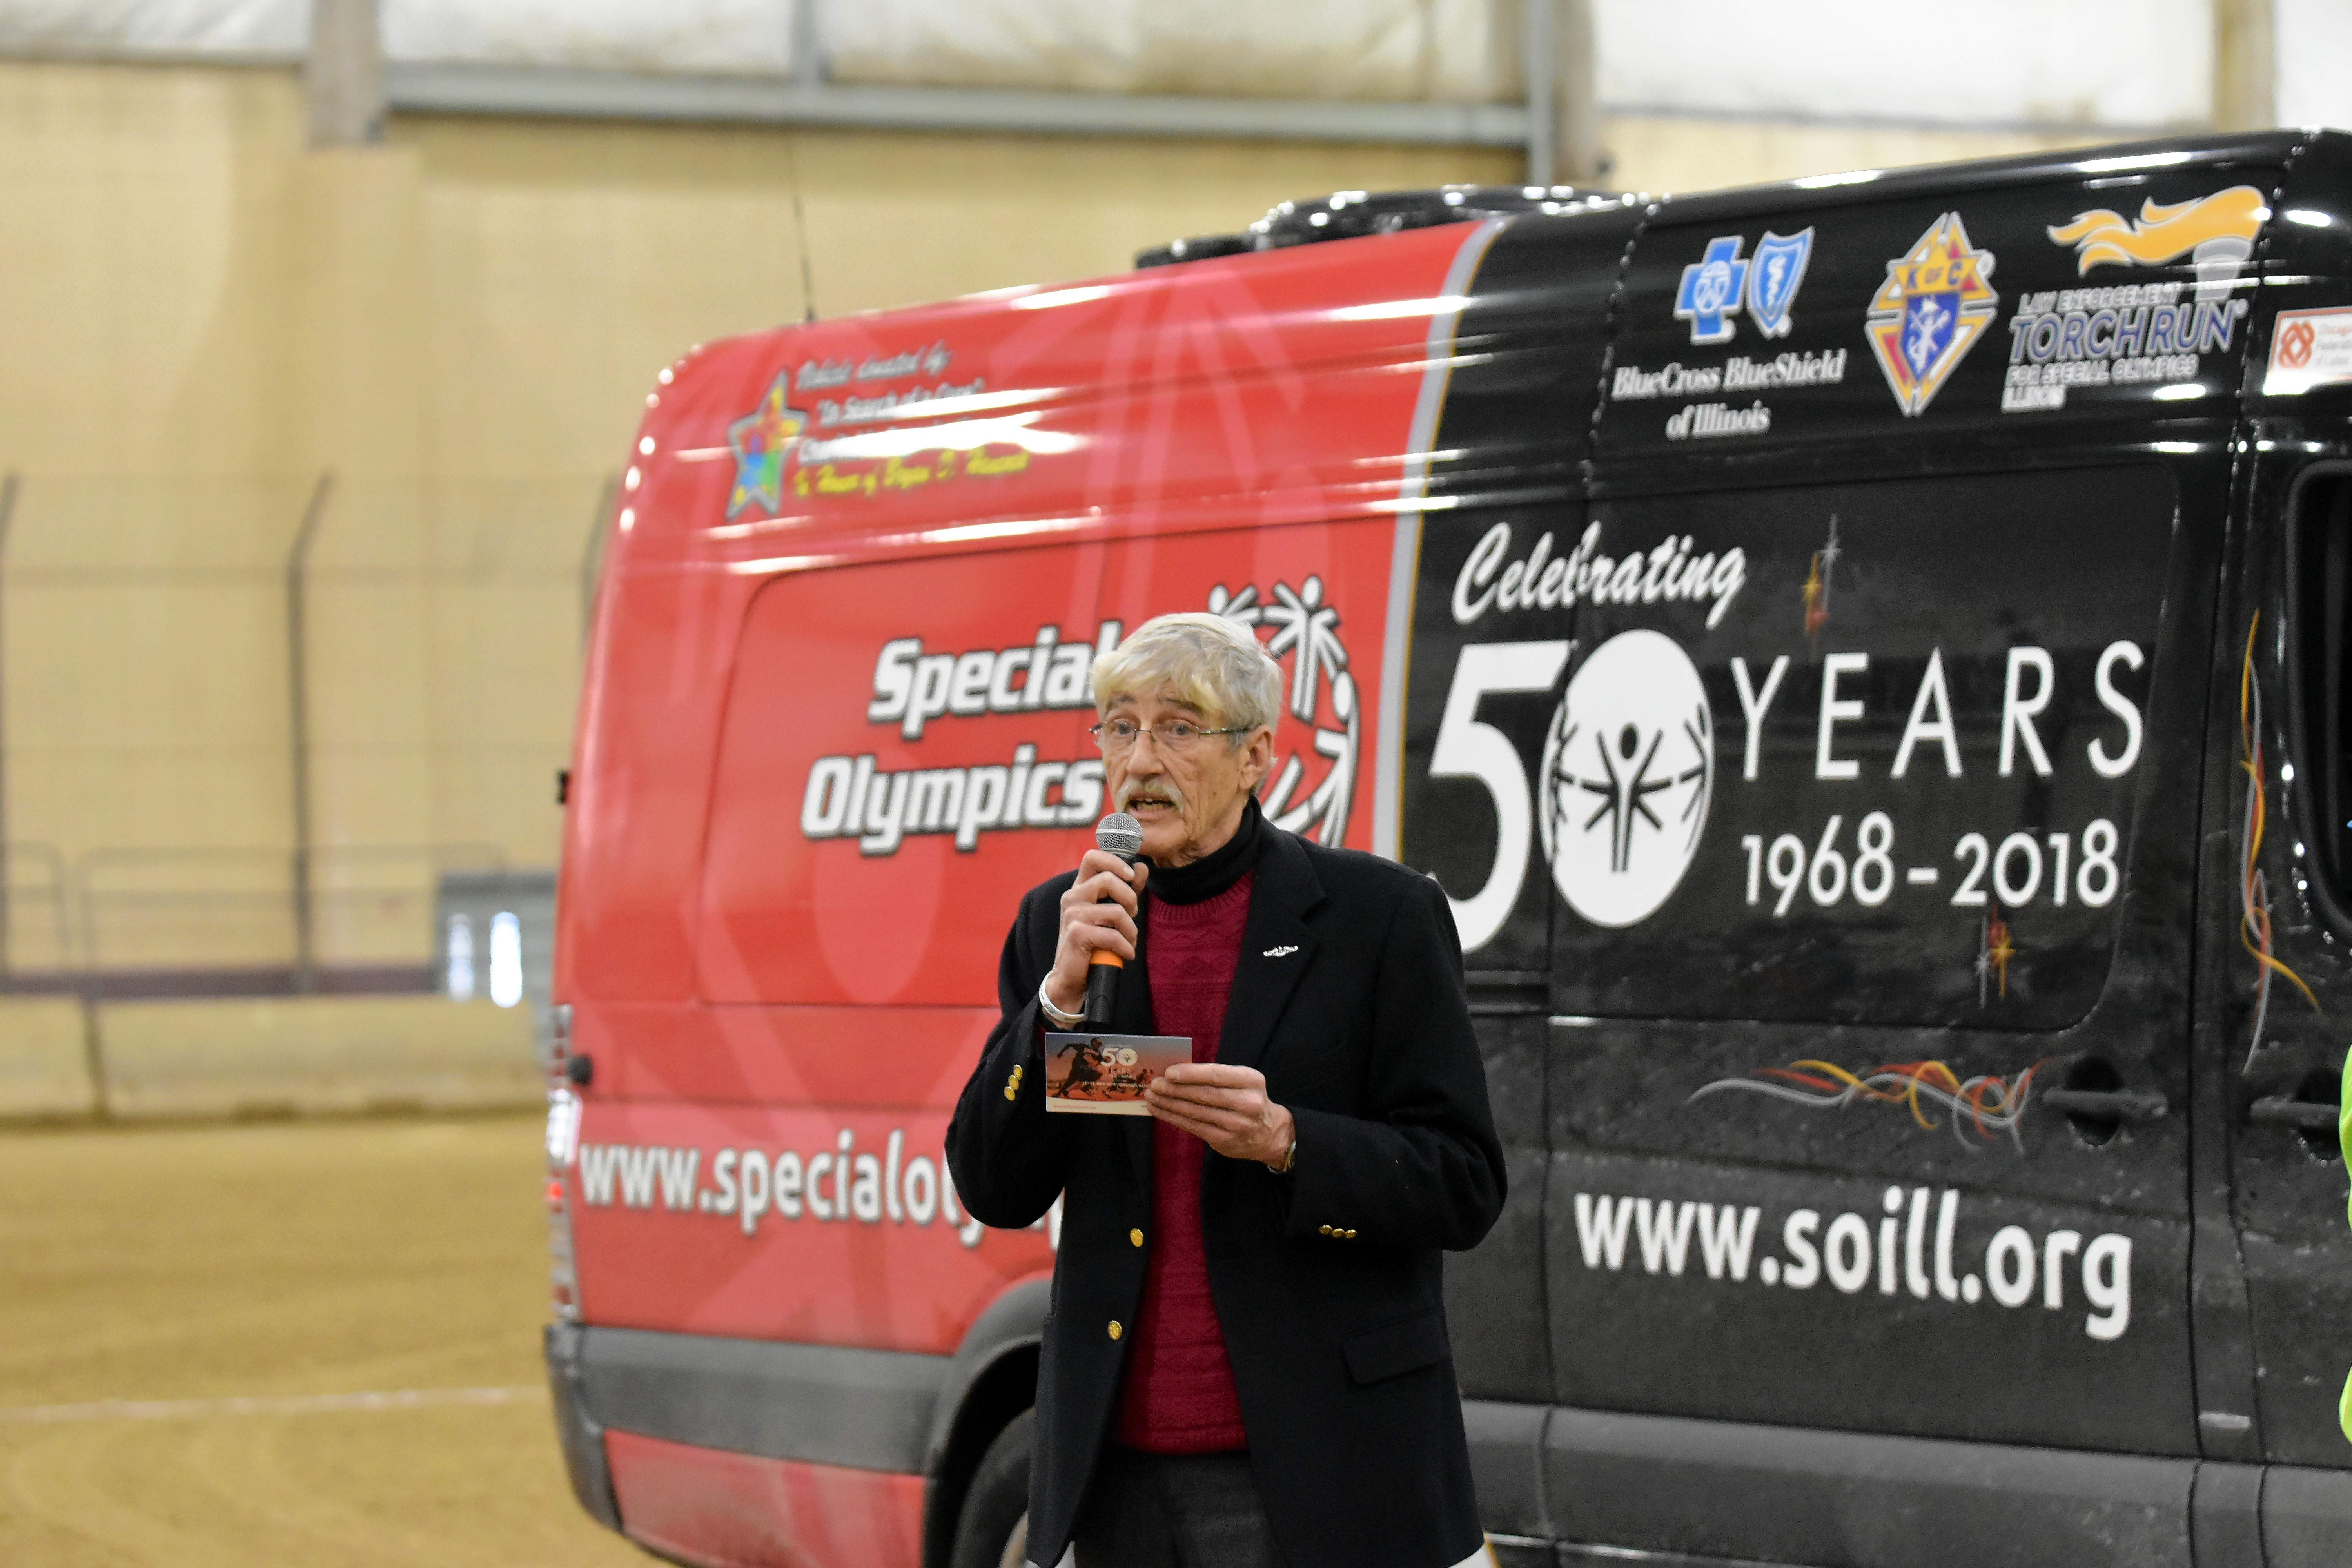 Hiram Brownell, Special Olympics historian, speaks during the opening ceremony. Brownell is traveling across the state in the van behind him as part of the lead-in to July's start of the year-long observation of the 50th anniversary of the Special Olympics.